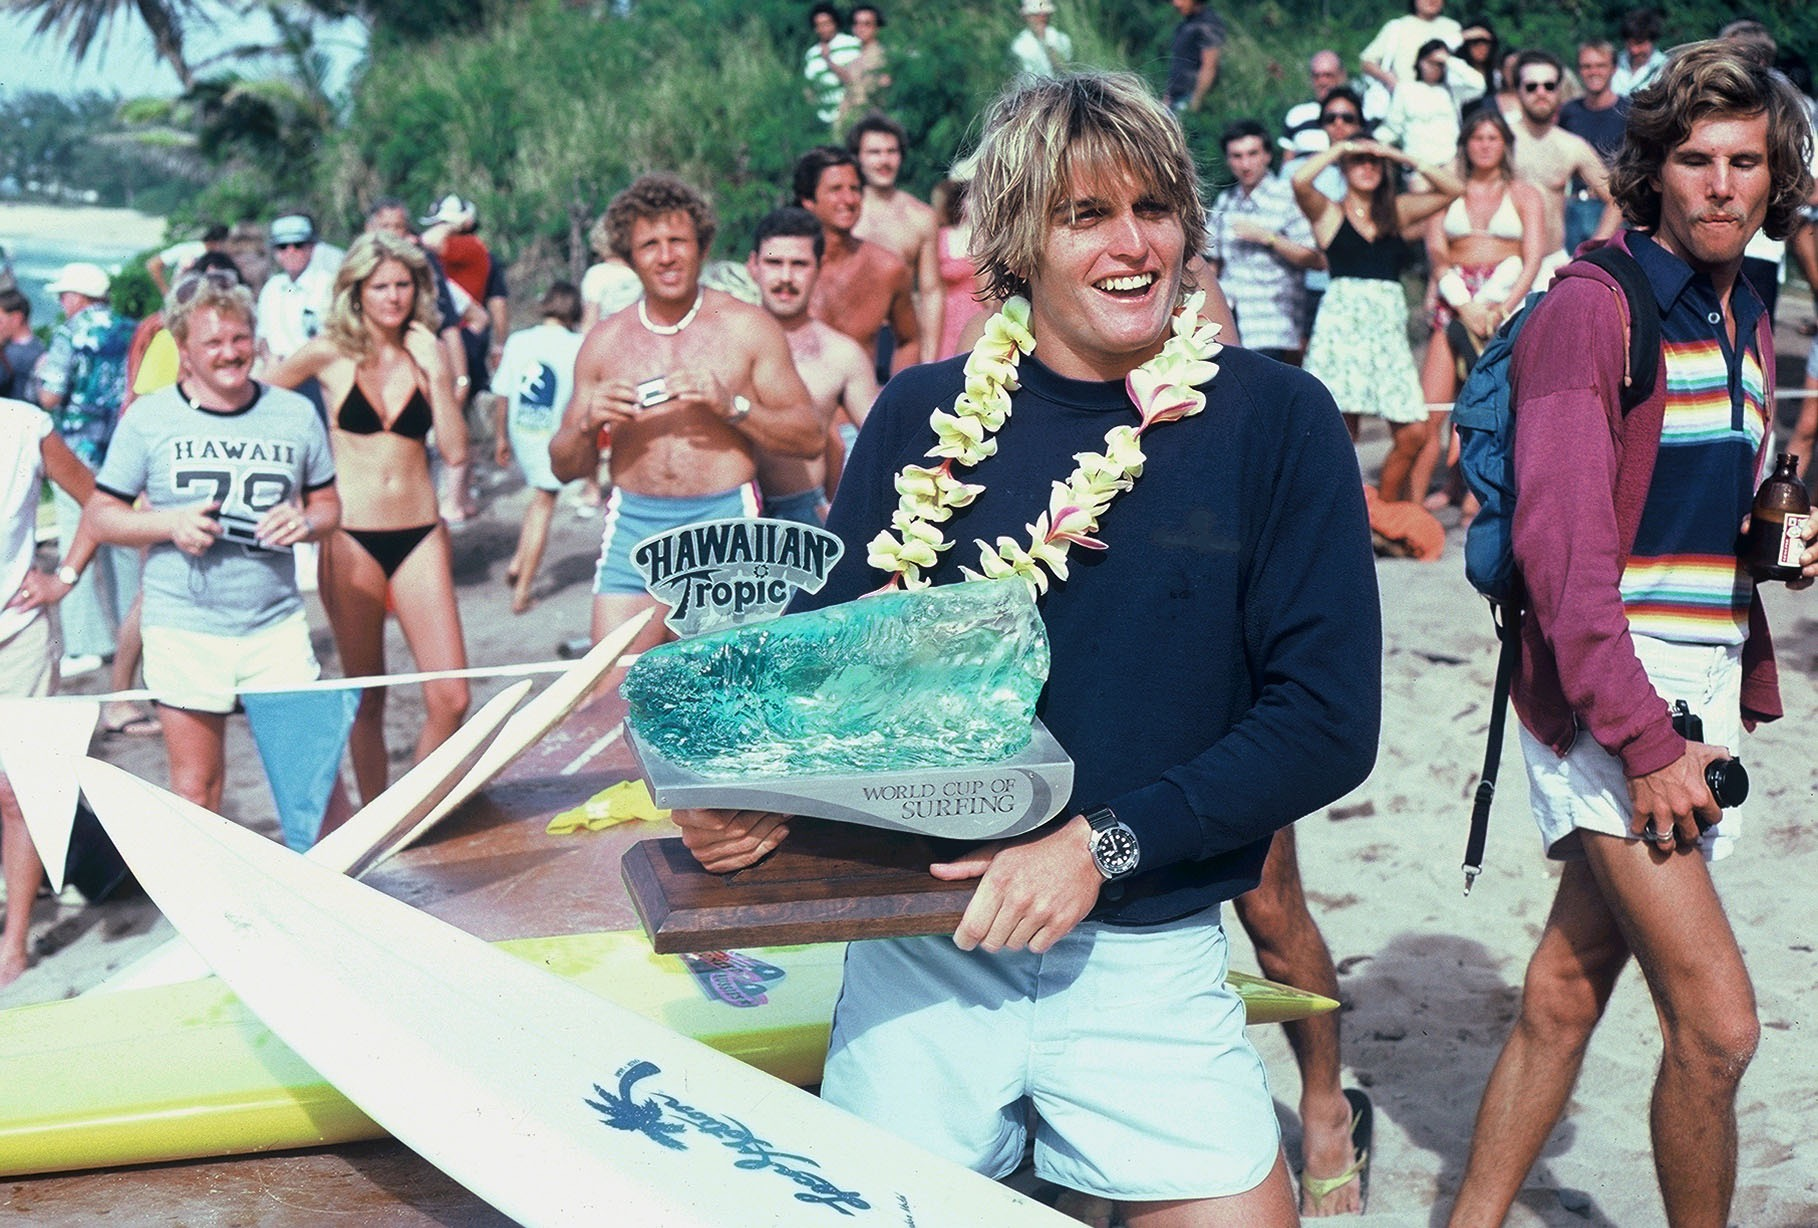 Buzzy's win in the amateur event of the 1978 World Cup propelled him into pro surfing, and the early days of the ISP.